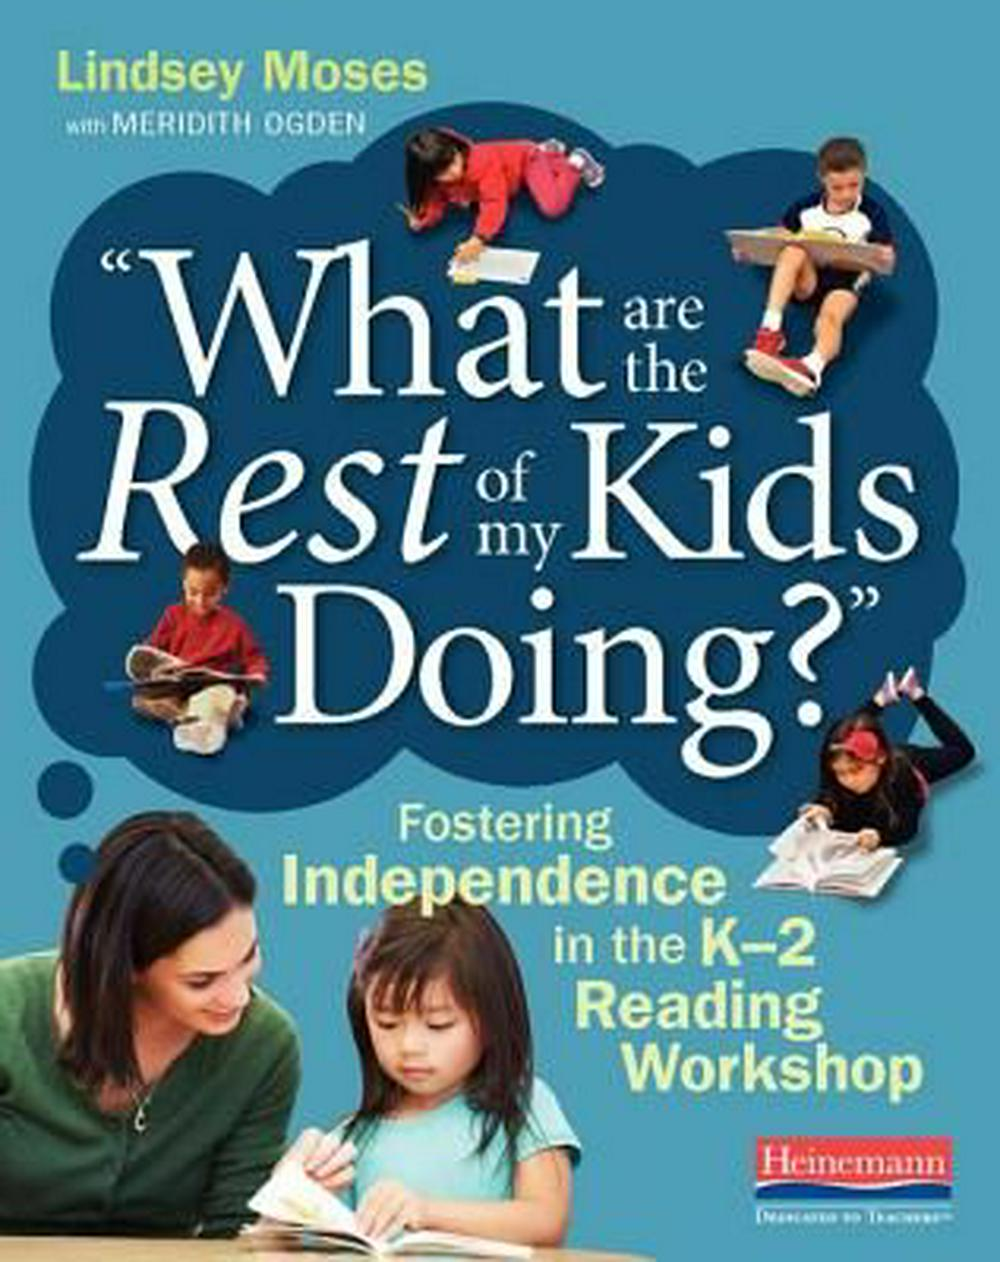 What Are the Rest of My Kids Doing?Fostering Independence in the K-2 Reading Workshop